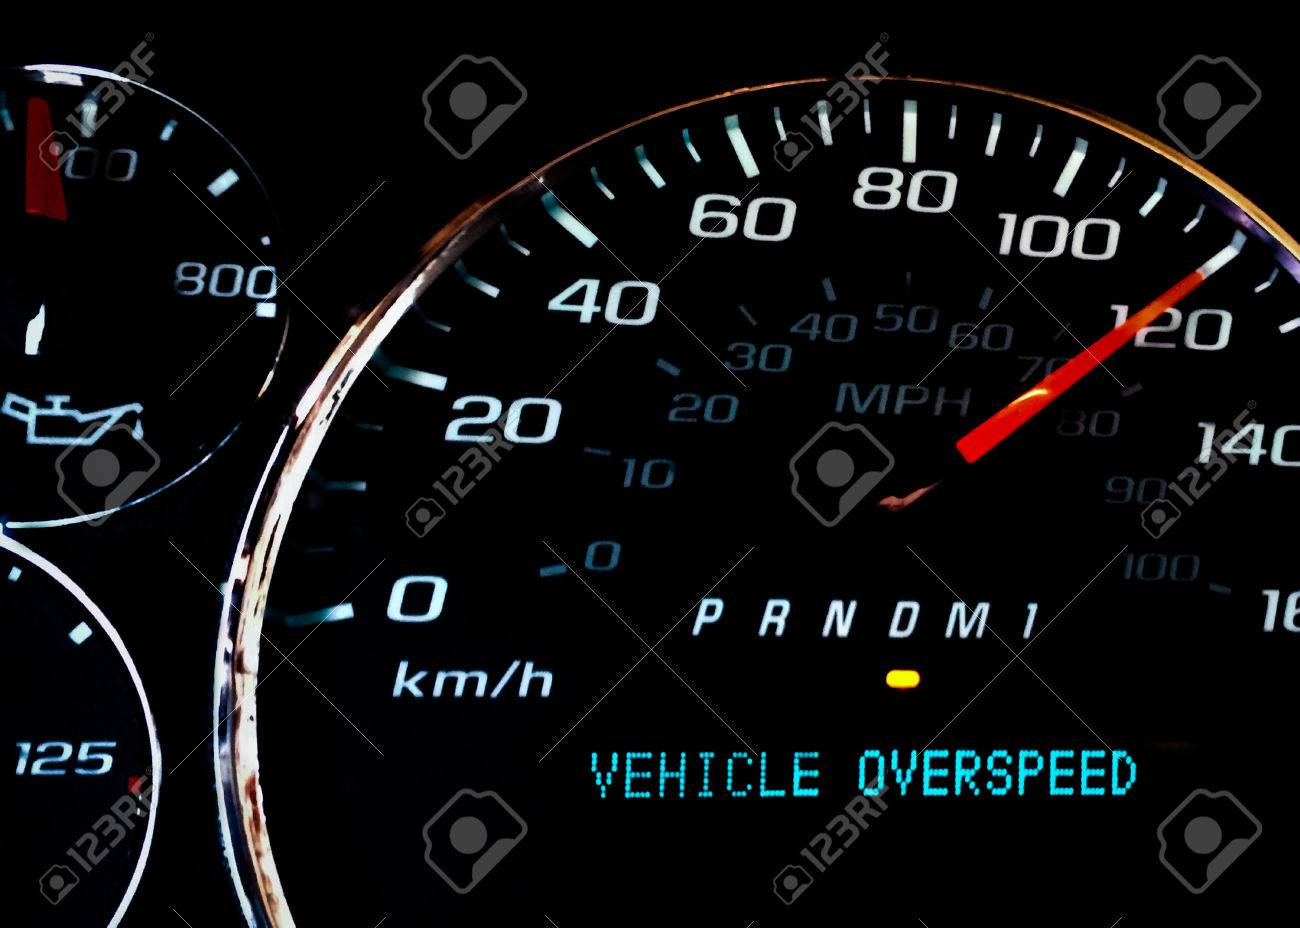 Vehicle Over Speed Dashboard Warning Light Stock Photo Picture - Car image sign of dashboarddashboard warning lights stock images royaltyfree images